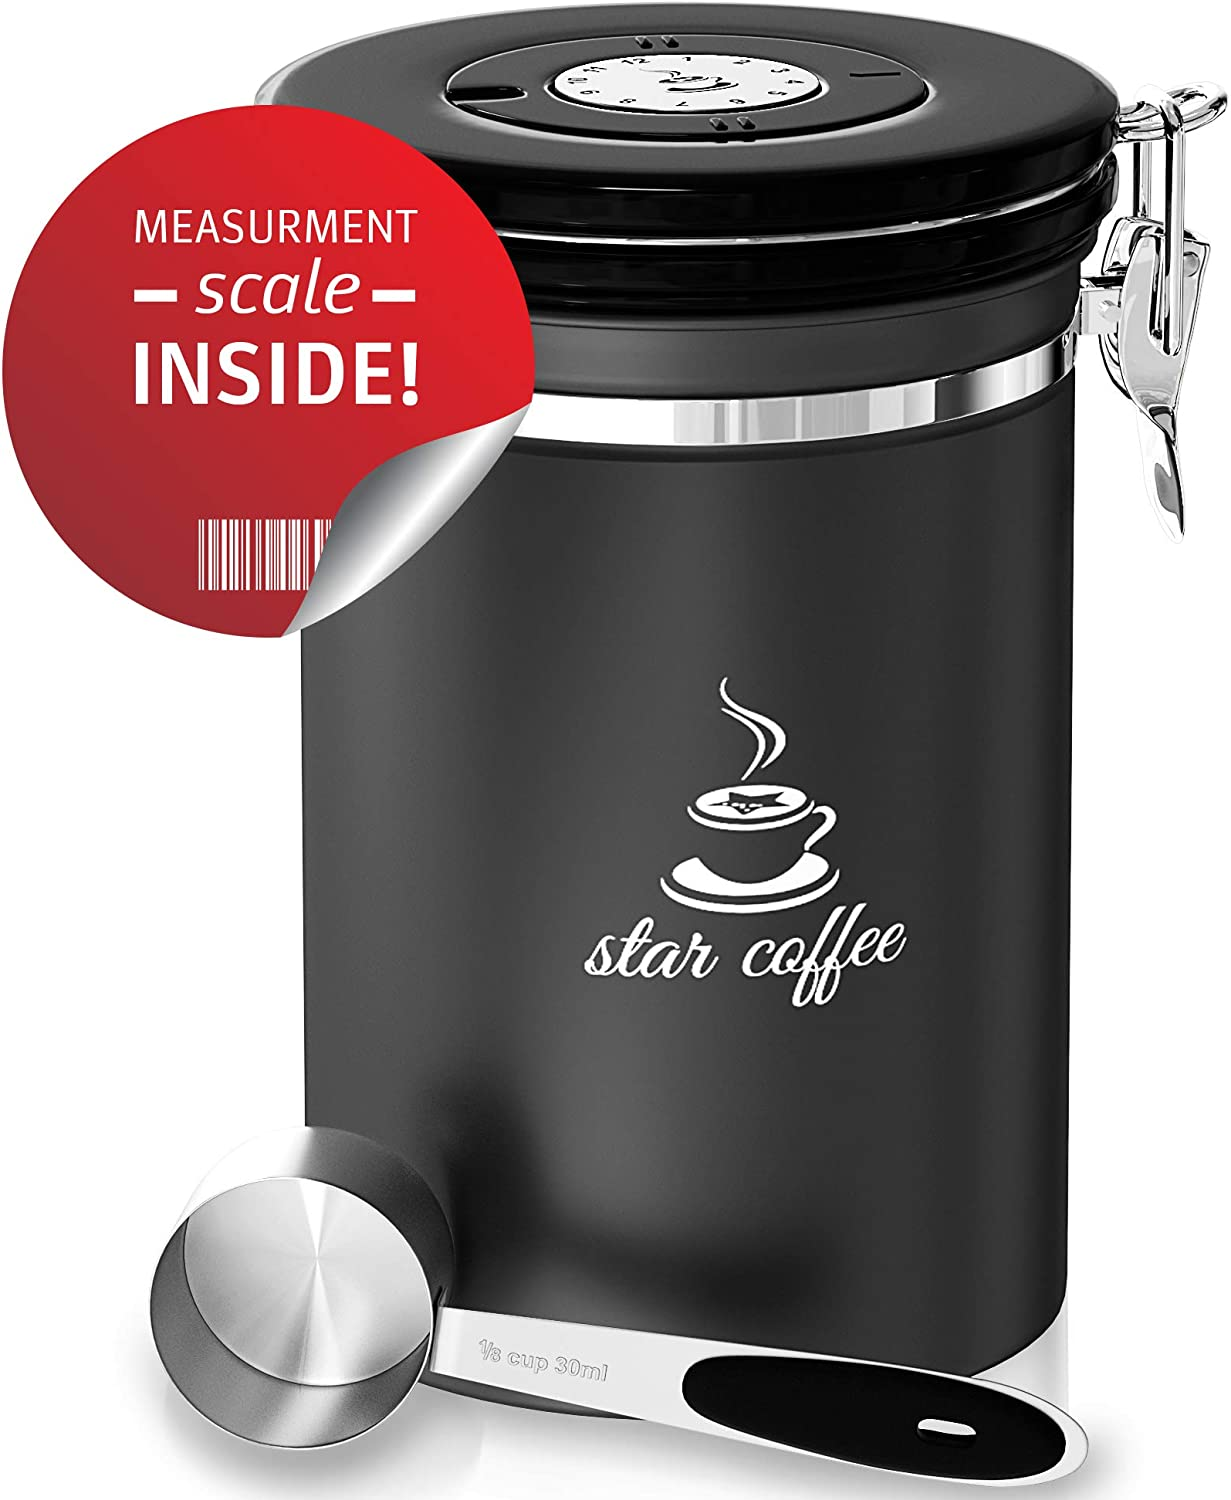 Star Coffee Container Airtight Coffee Storage - Stainless Steel Canister with Measuring Scoop for Beans or Ground Coffee, 5 CO2 Valve Filters, Freshness Calendar, eBook, Large Coffee Holder 22oz